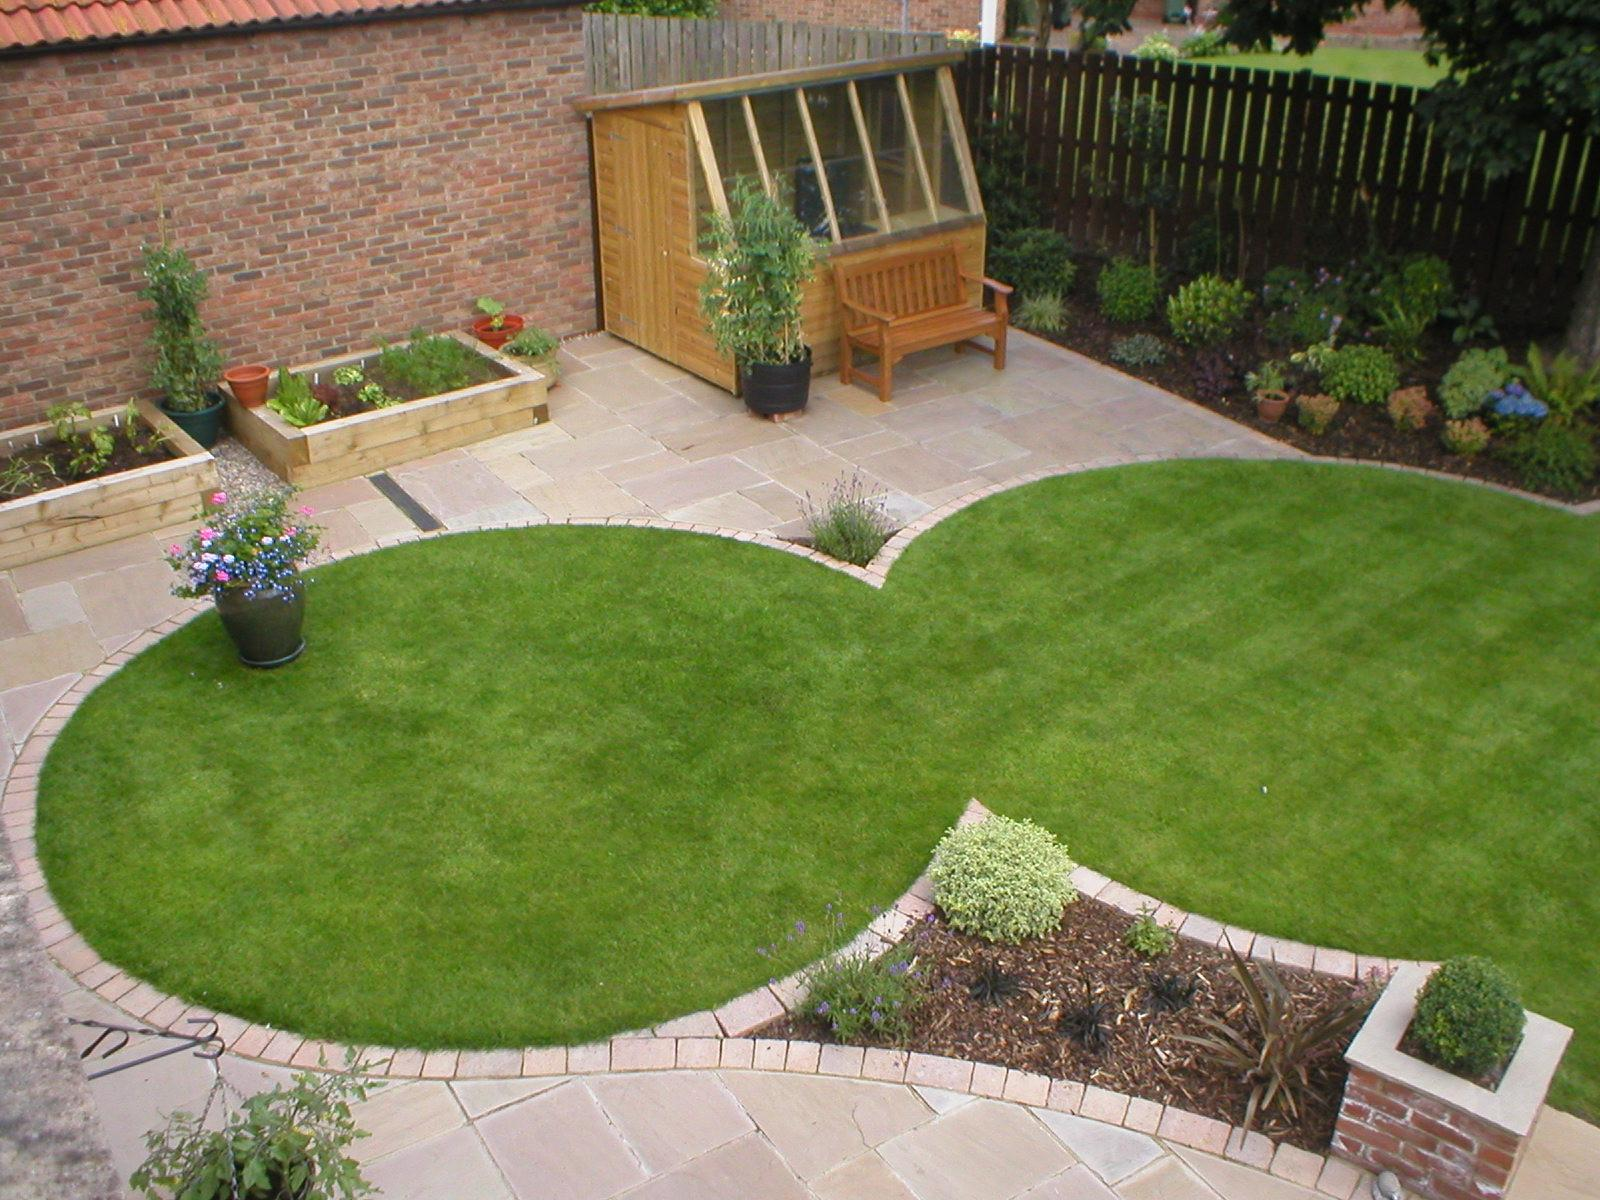 lawn-shapes. 100+ Surprising Garden Design Ideas You Should Not Miss in 2021